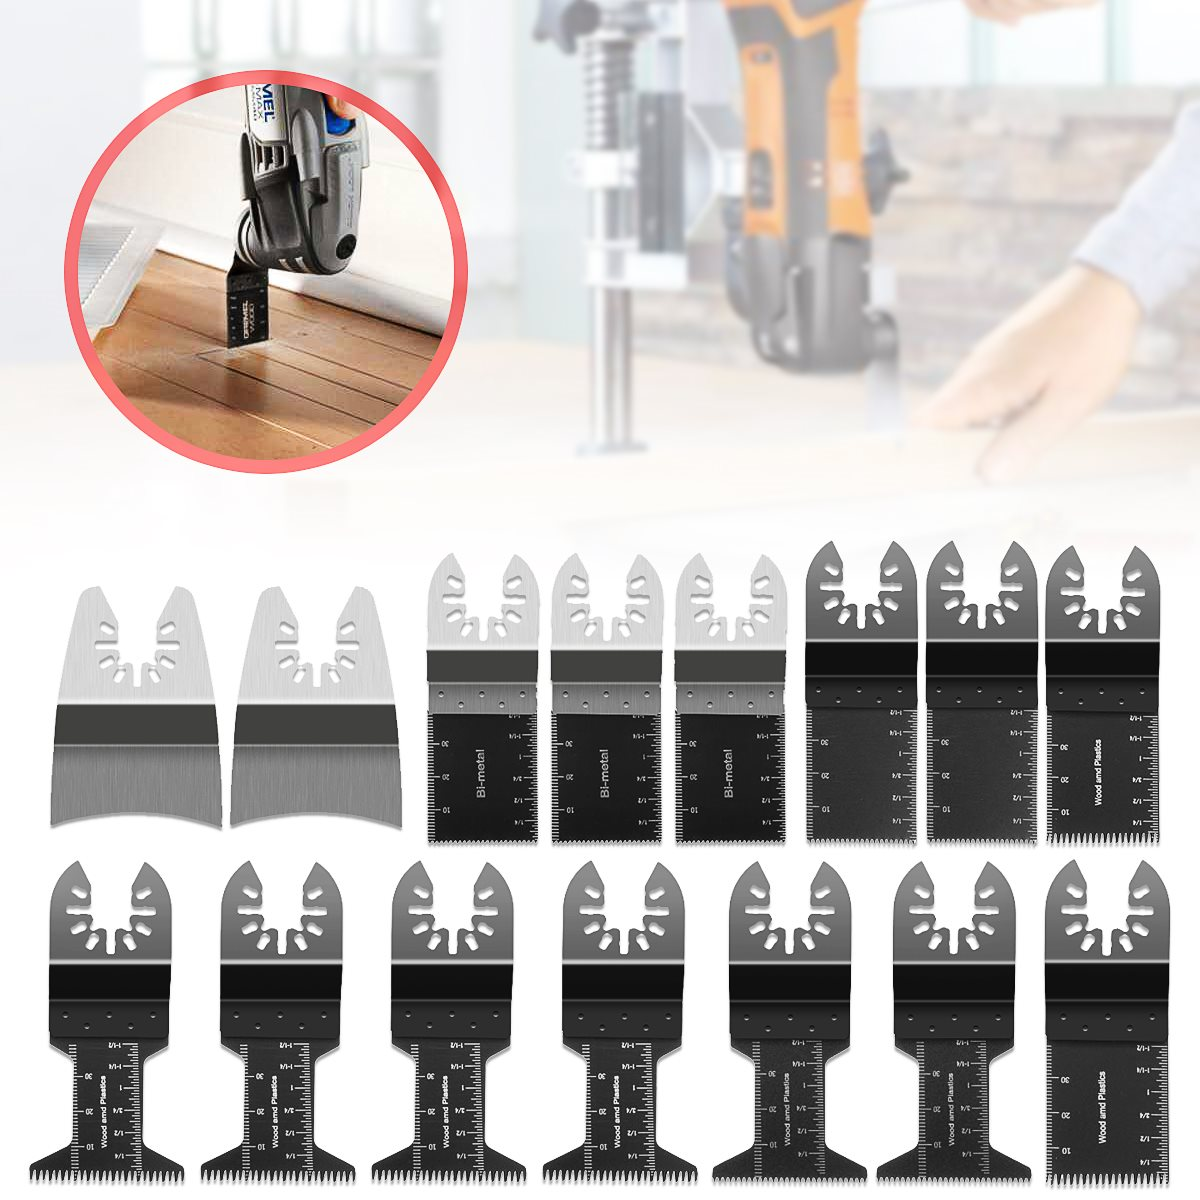 Doersupp Hot Sale 15 Pcs/set Oscillating Multitool Saw Blade Woodworking Accessories Kit Home DIY Power Tools For Cutting Wood